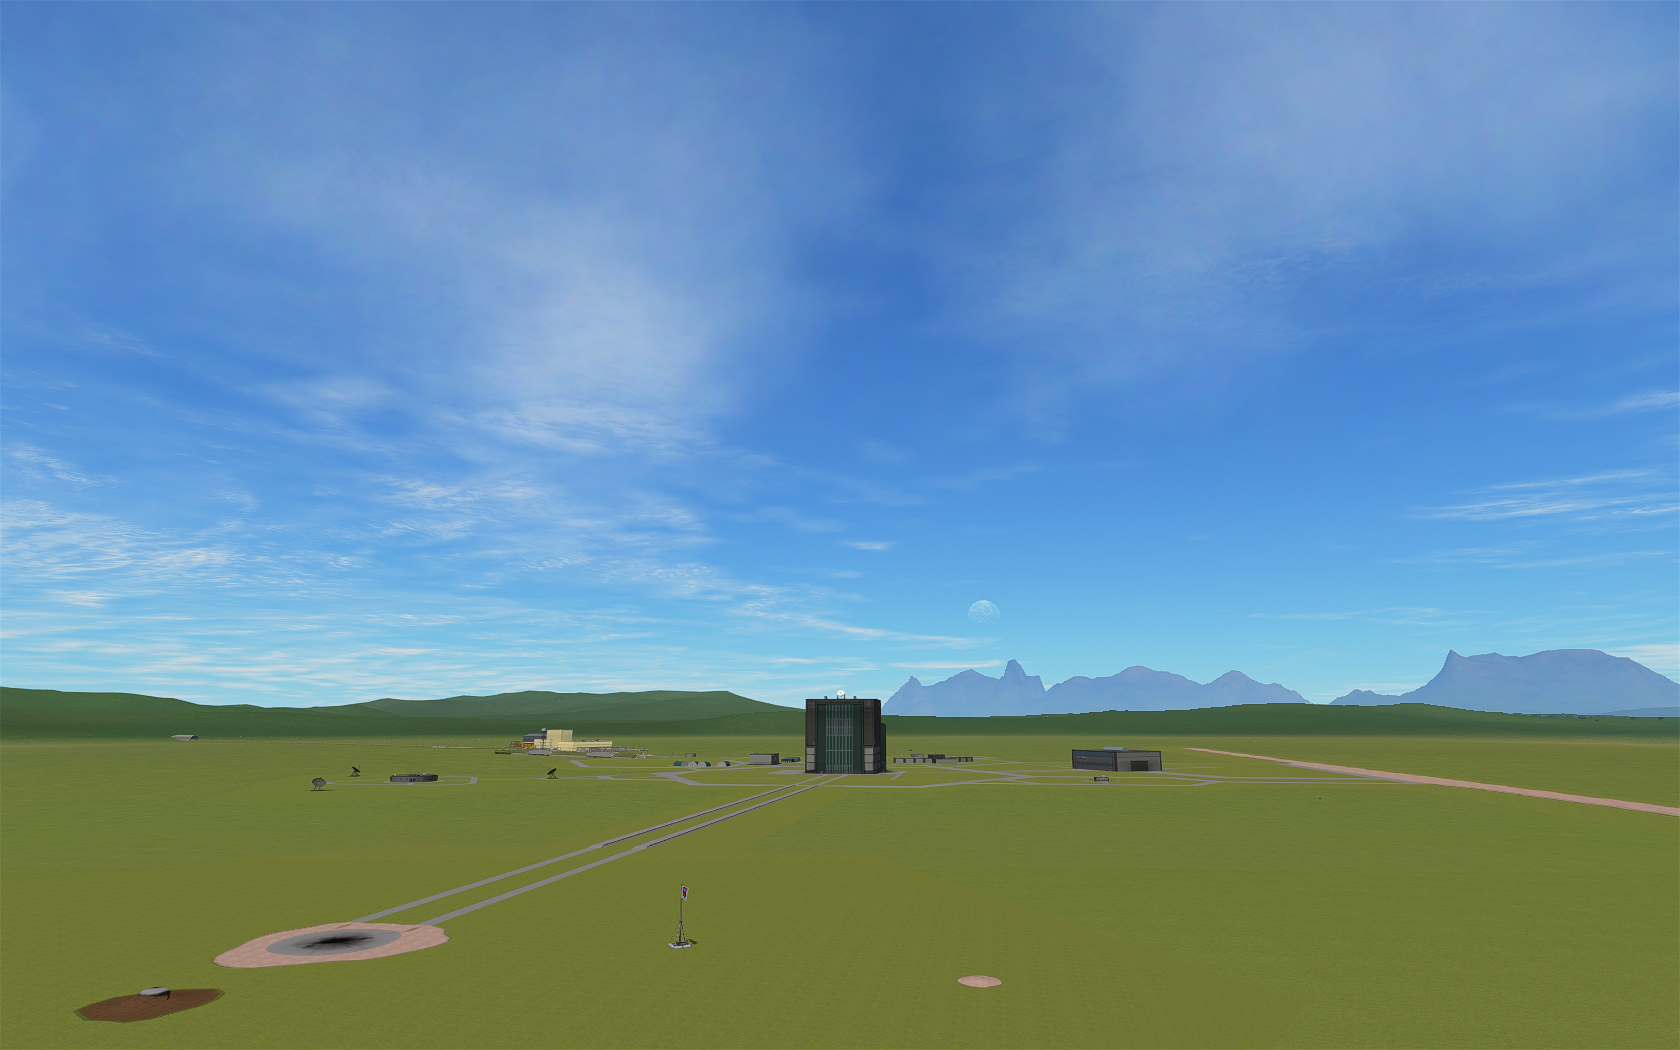 About the KSA » Kerbal Space Agency